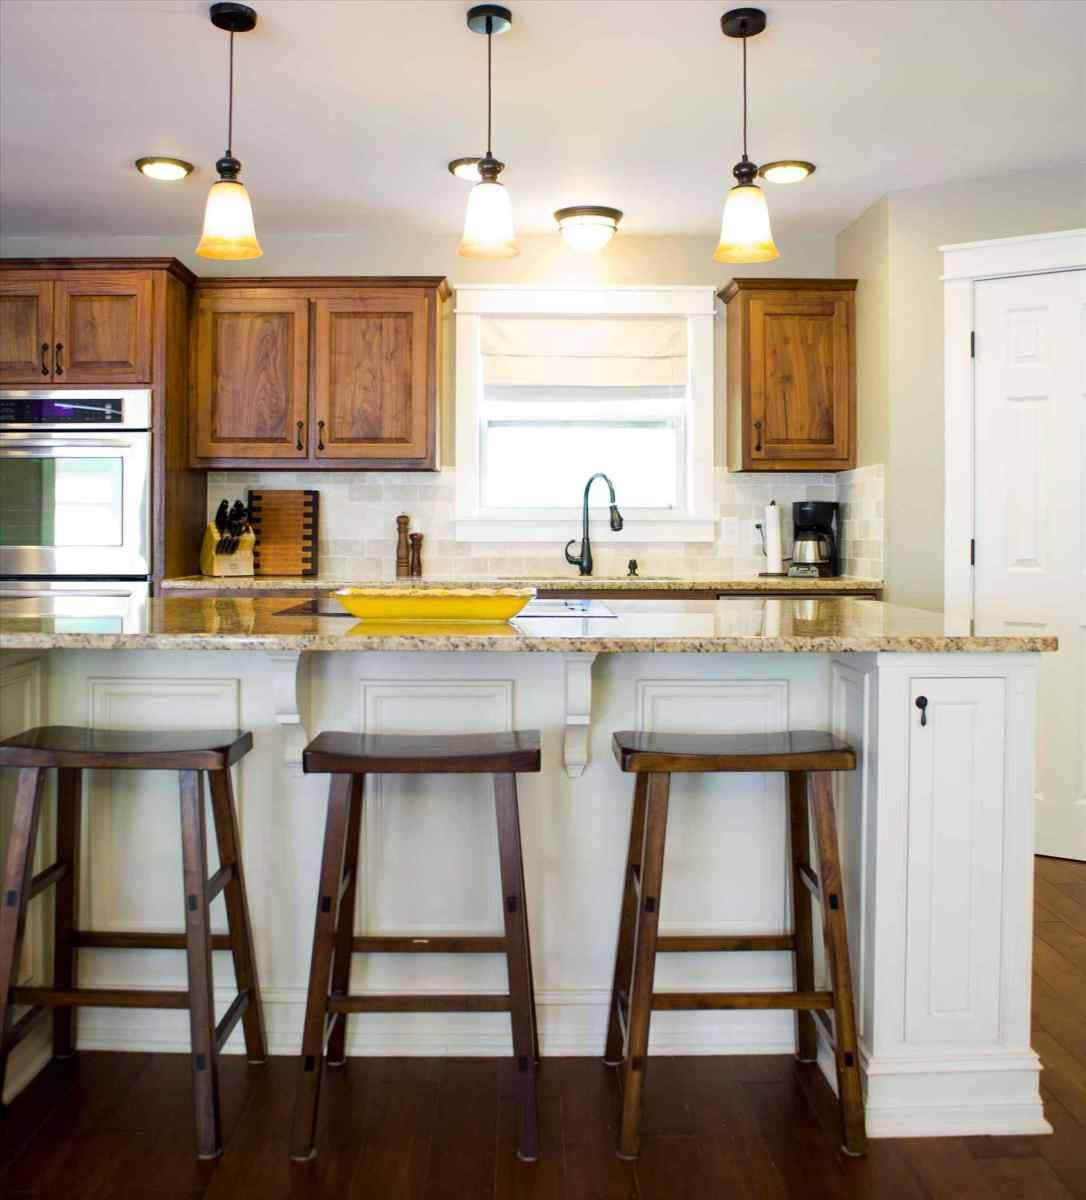 large kitchen islands with seating for 6 kitchen island with seating modern kitchen island on kitchen island ideas kitchen bar carts id=81553